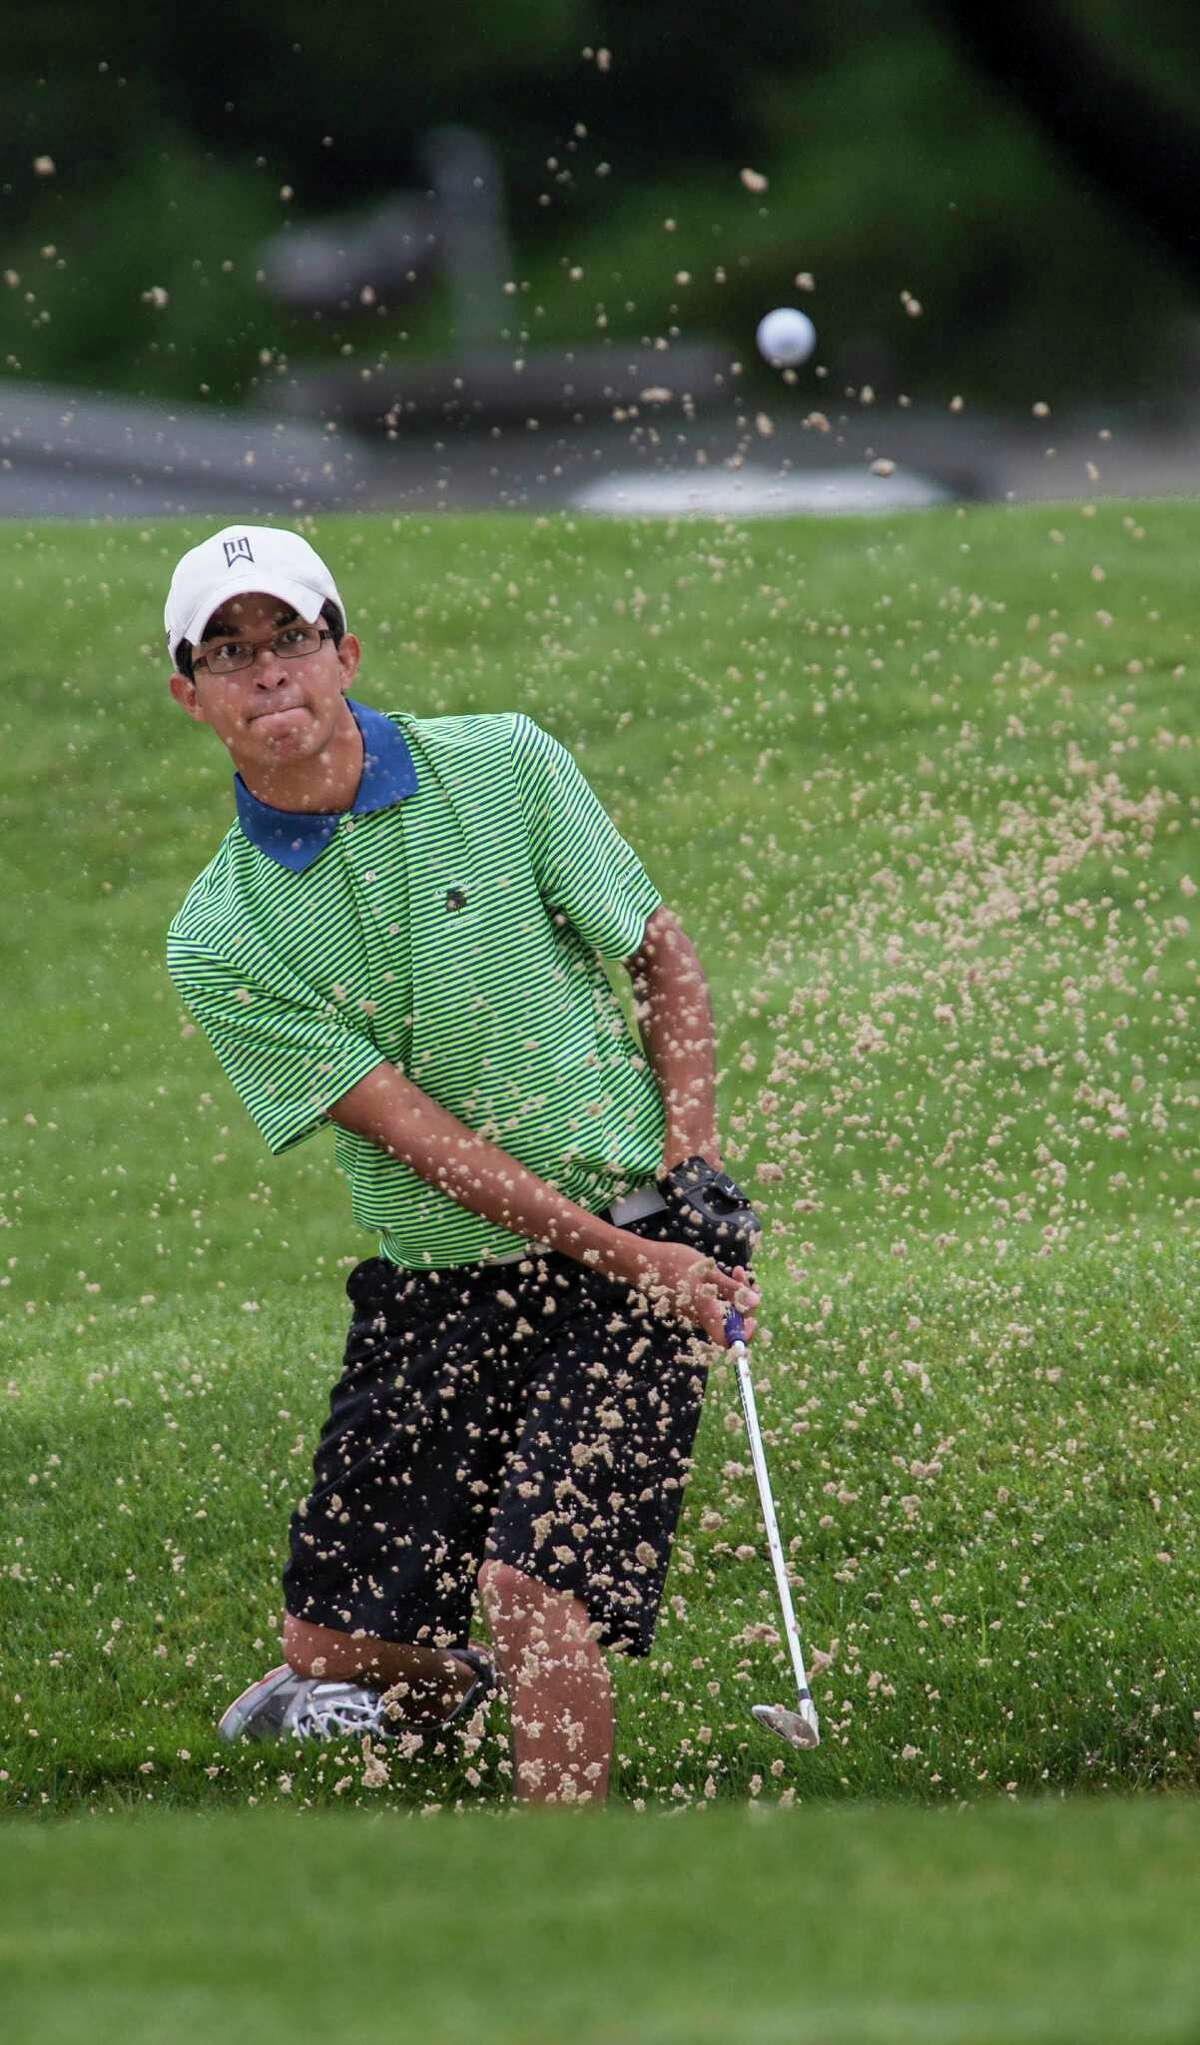 Jason Morilla hits out of a sand trap and onto the fourth hole green during the second round of the Greenwich Town's Men golf Tournament played at Griffith E. Harris Golf Course, Greenwich, CT on Sunday, June 28, 2015.